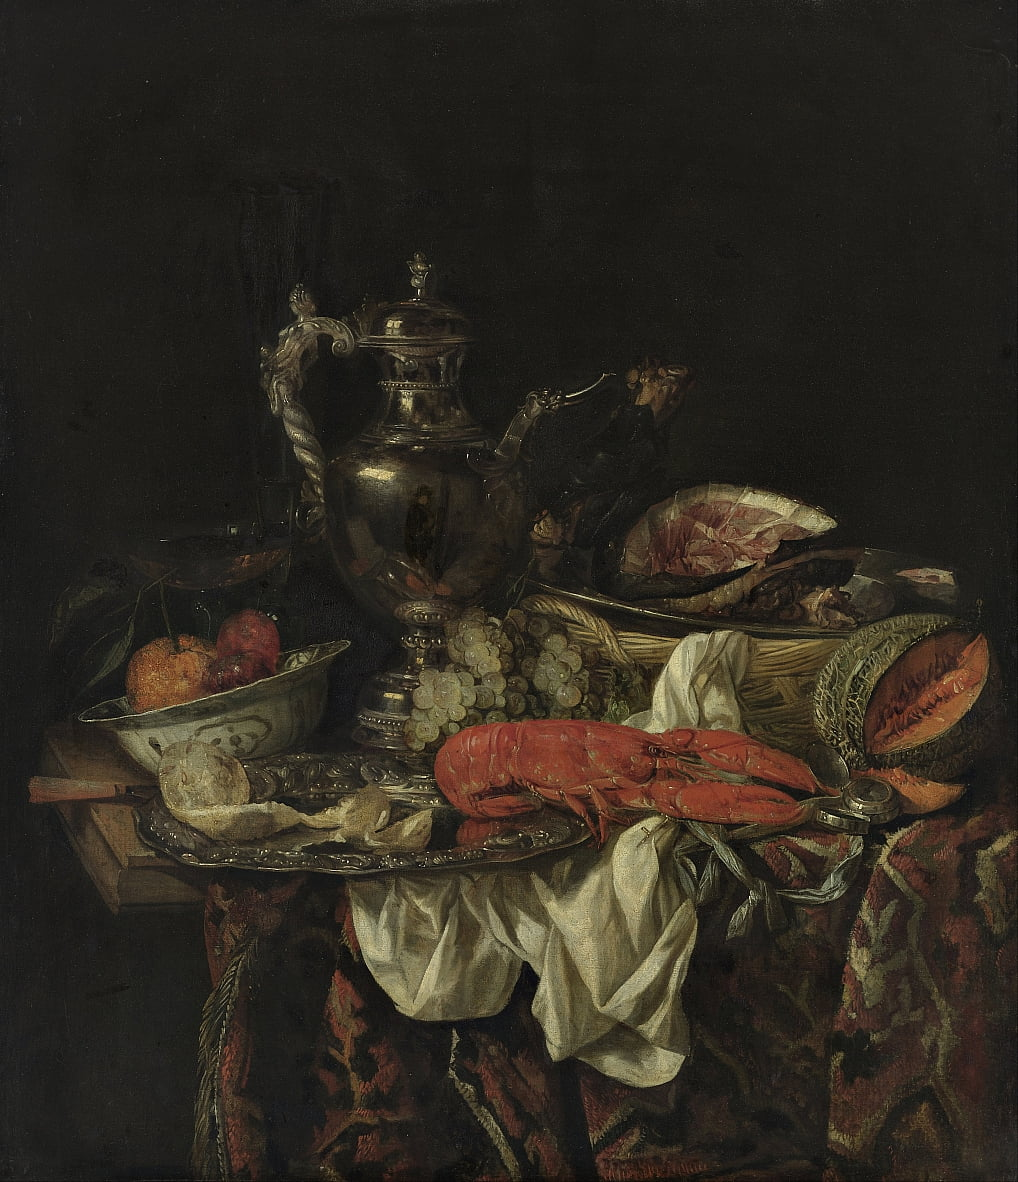 Still Life with a Silver Pitcher by Abraham van Beijeren